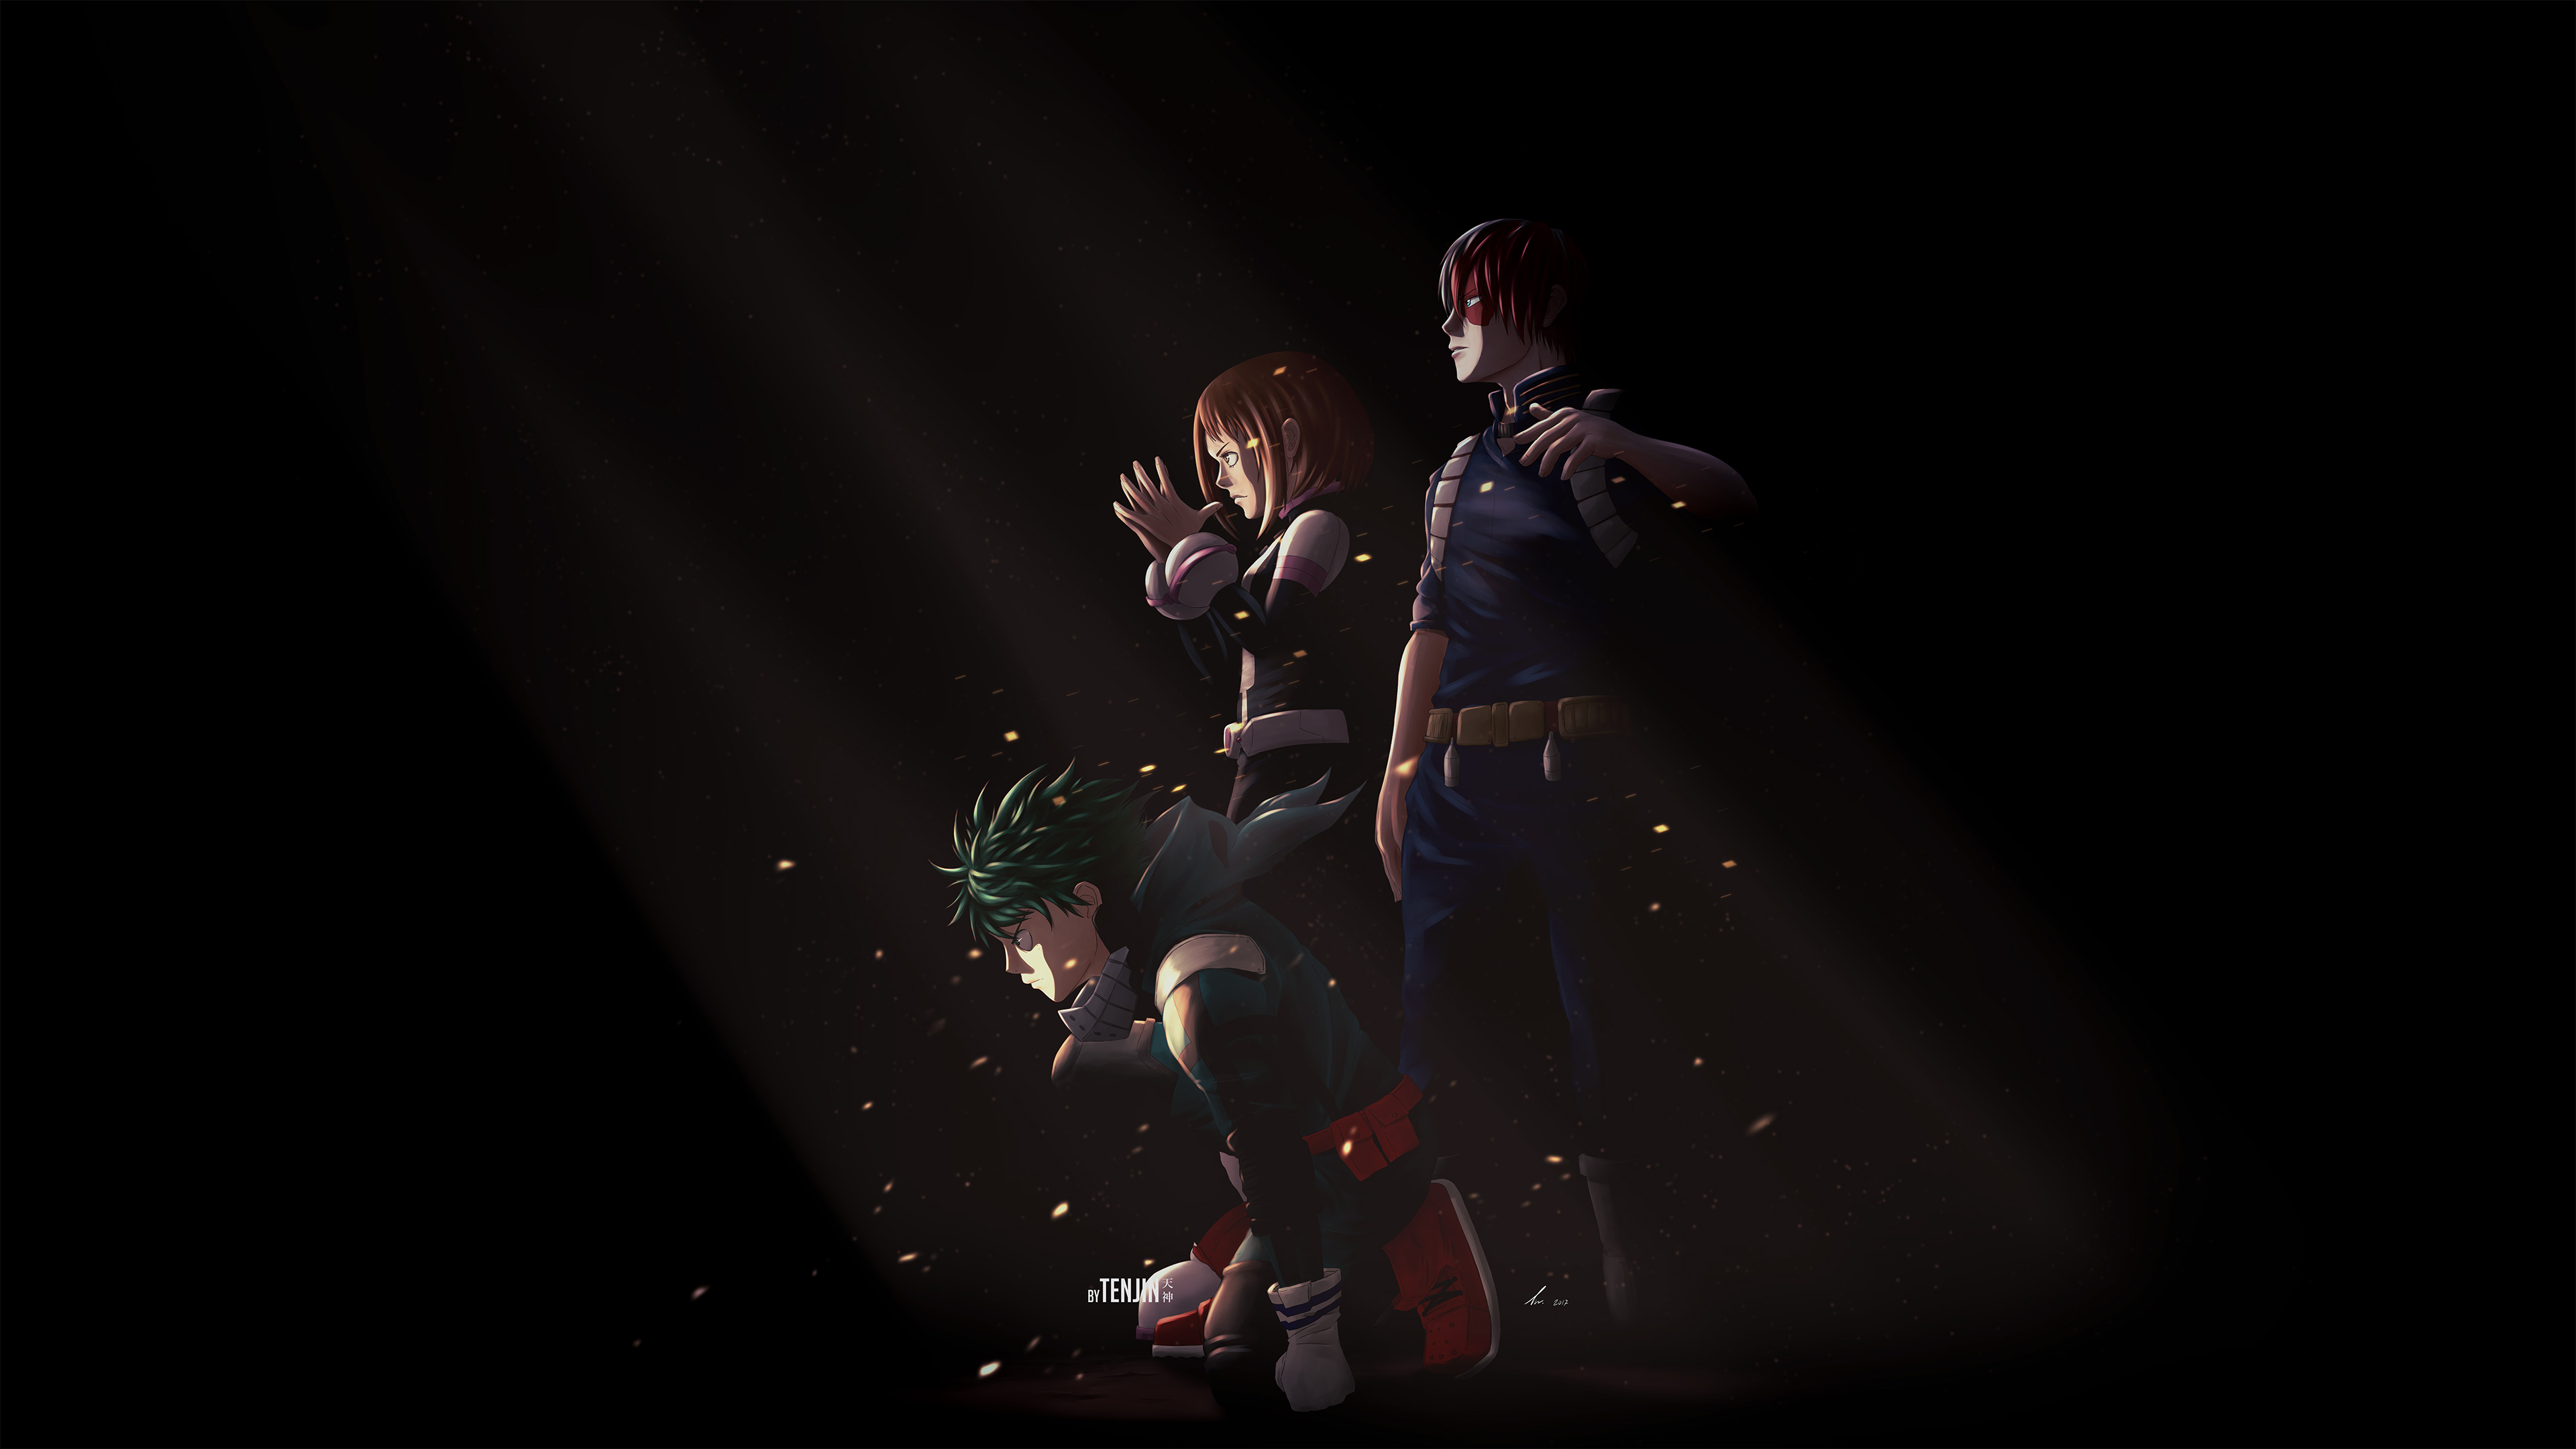 Wallpaper 4k Uraraka Deku Shouto Todoroki My Hero Academia 4k